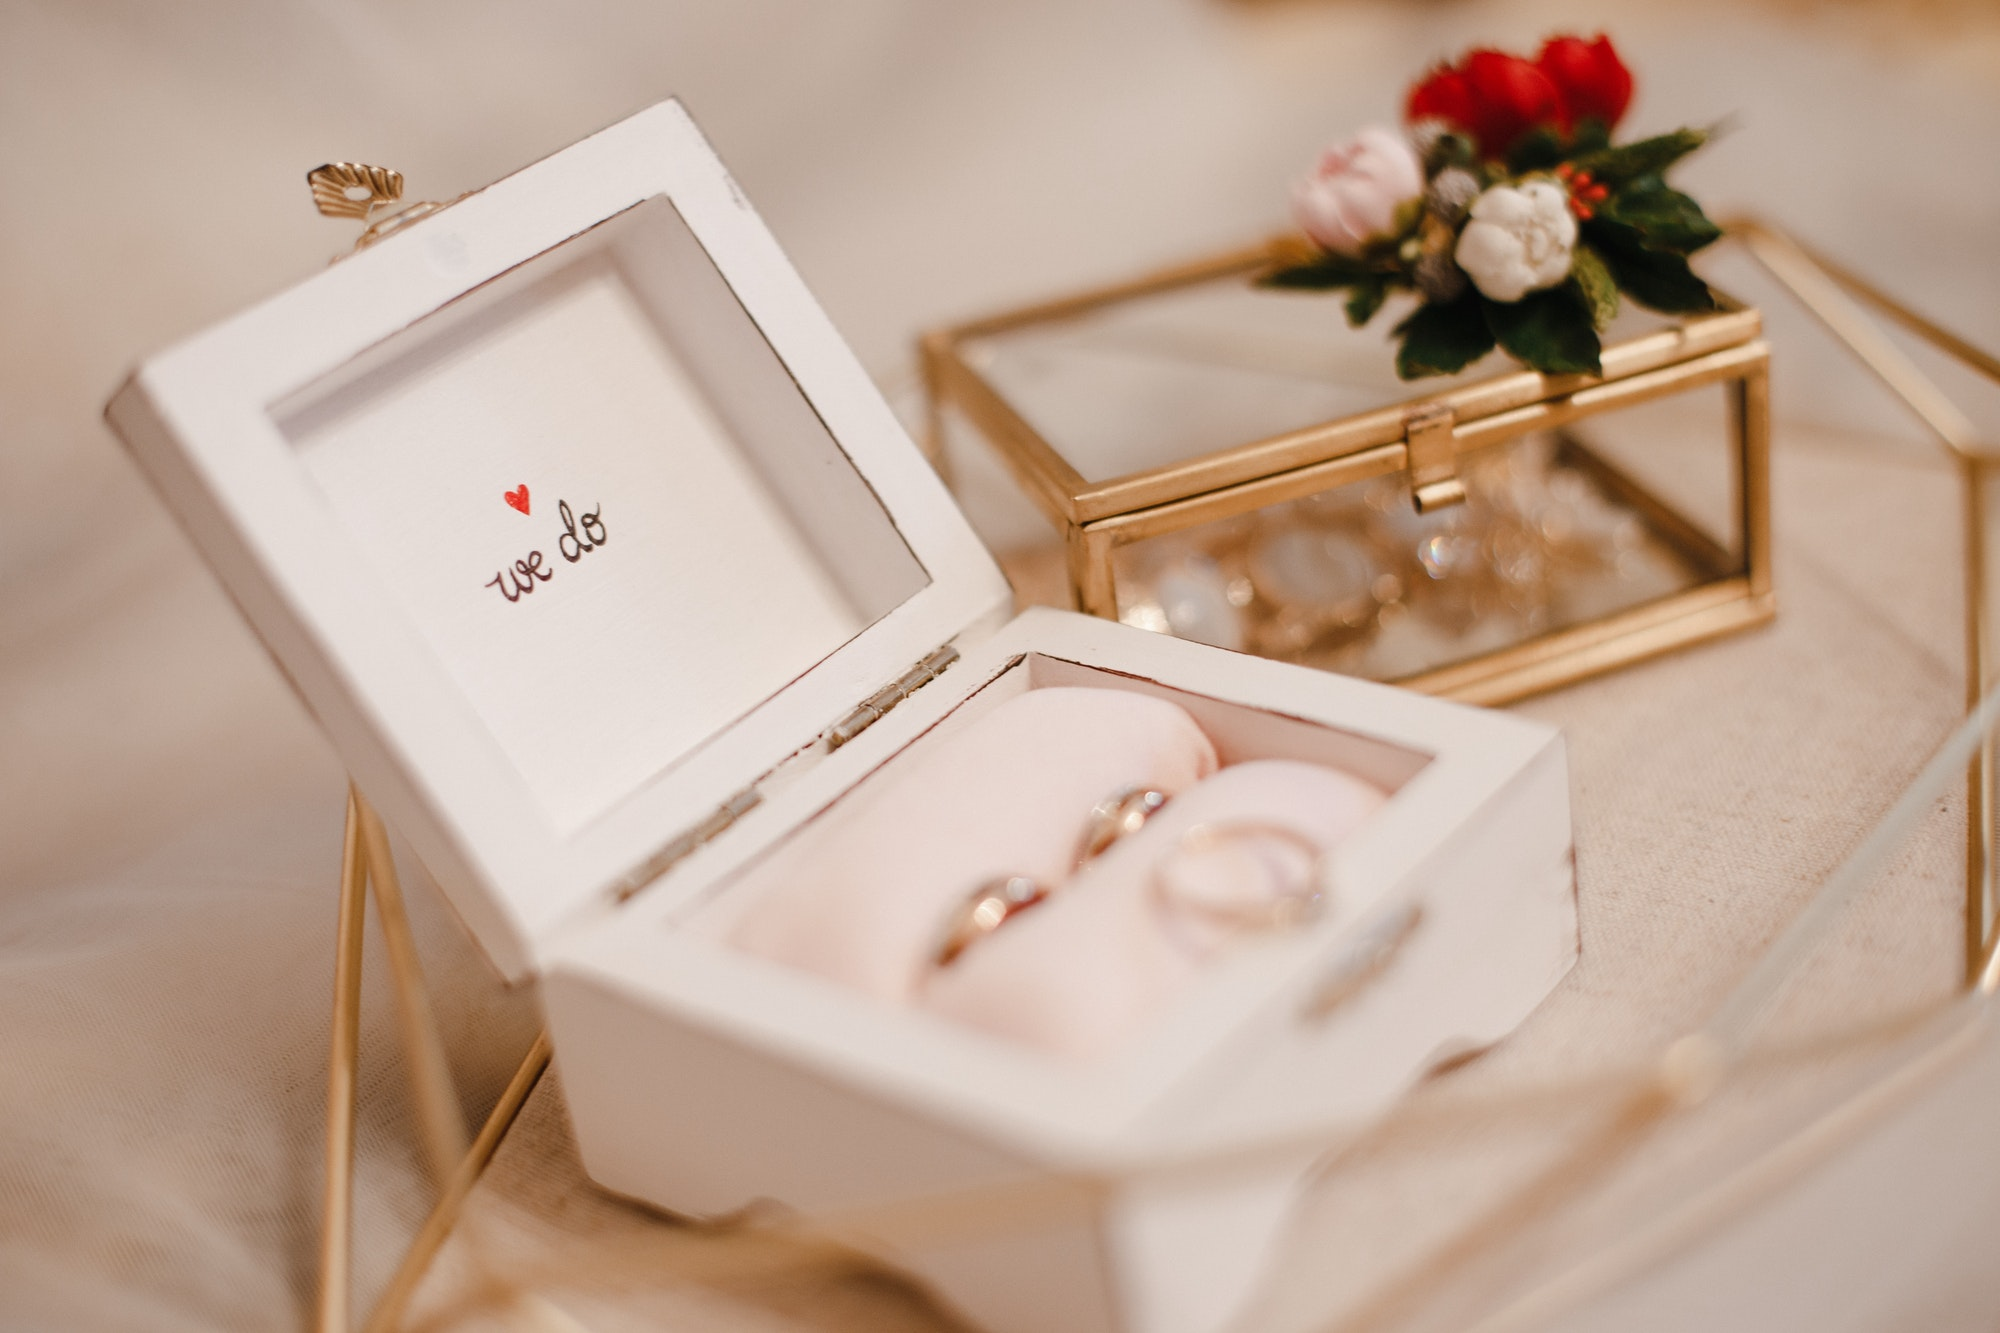 a box with wedding rings